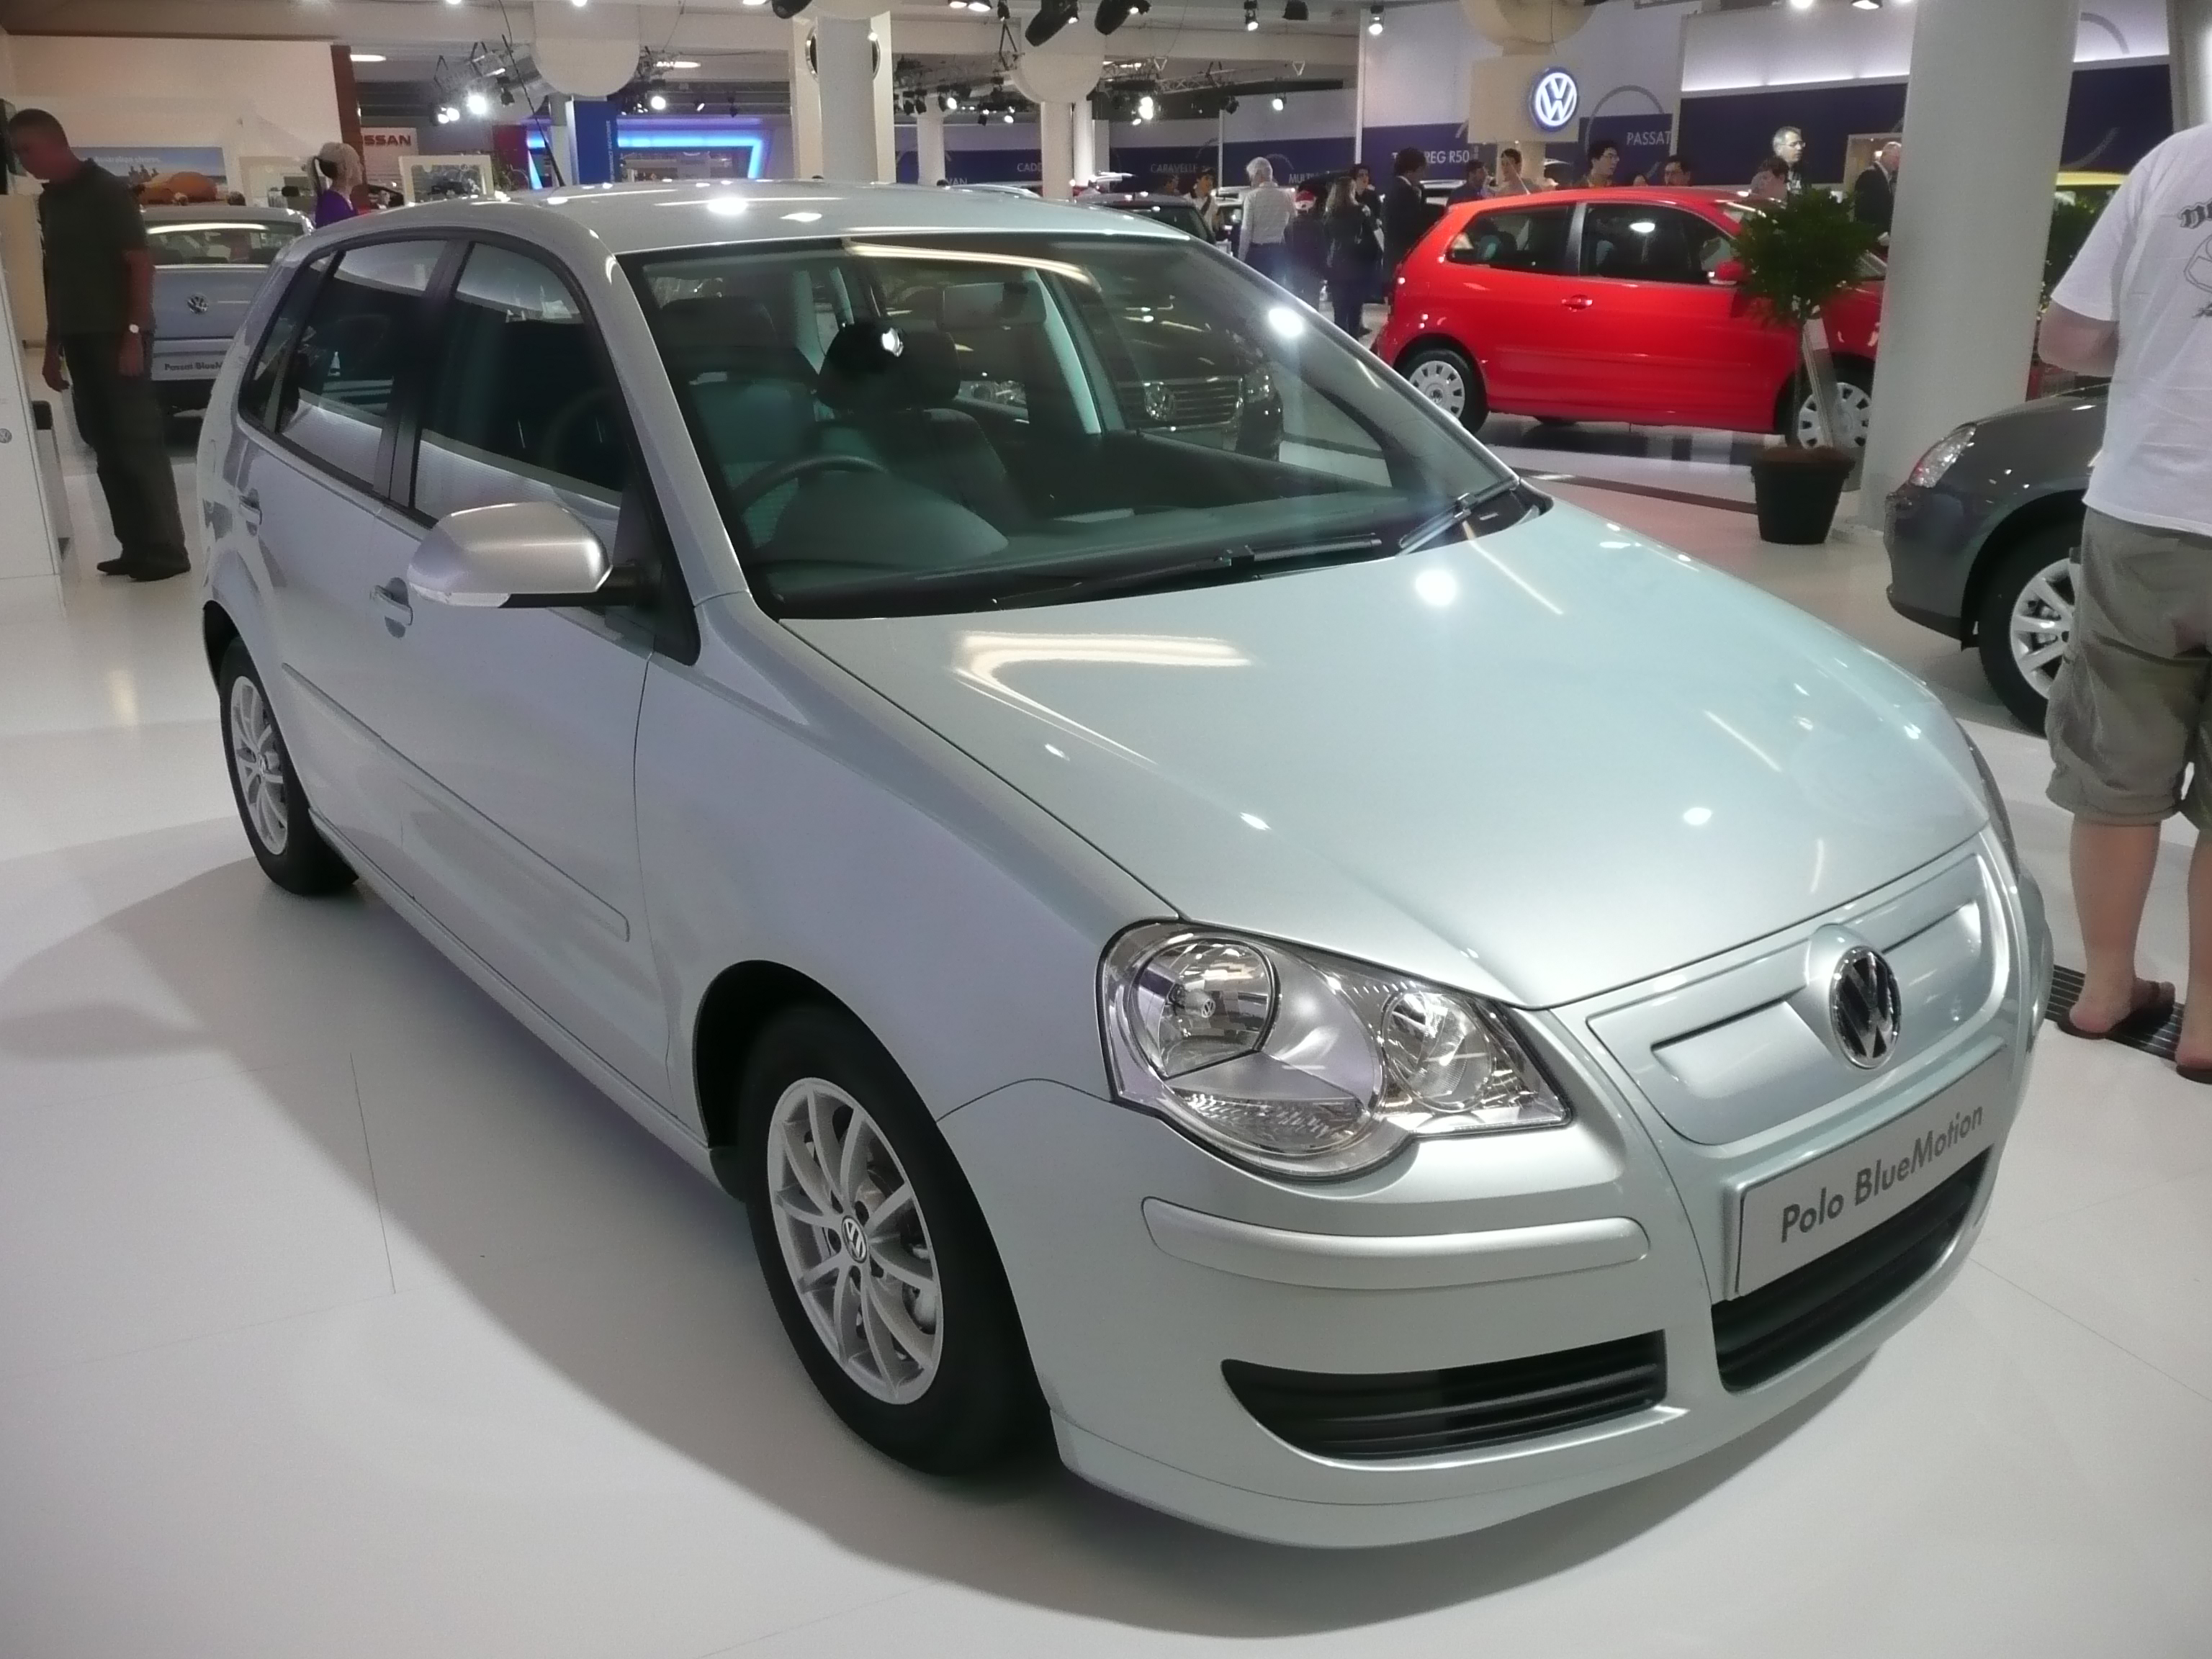 2006 volkswagen polo bluemotion related infomation specifications weili automotive network. Black Bedroom Furniture Sets. Home Design Ideas